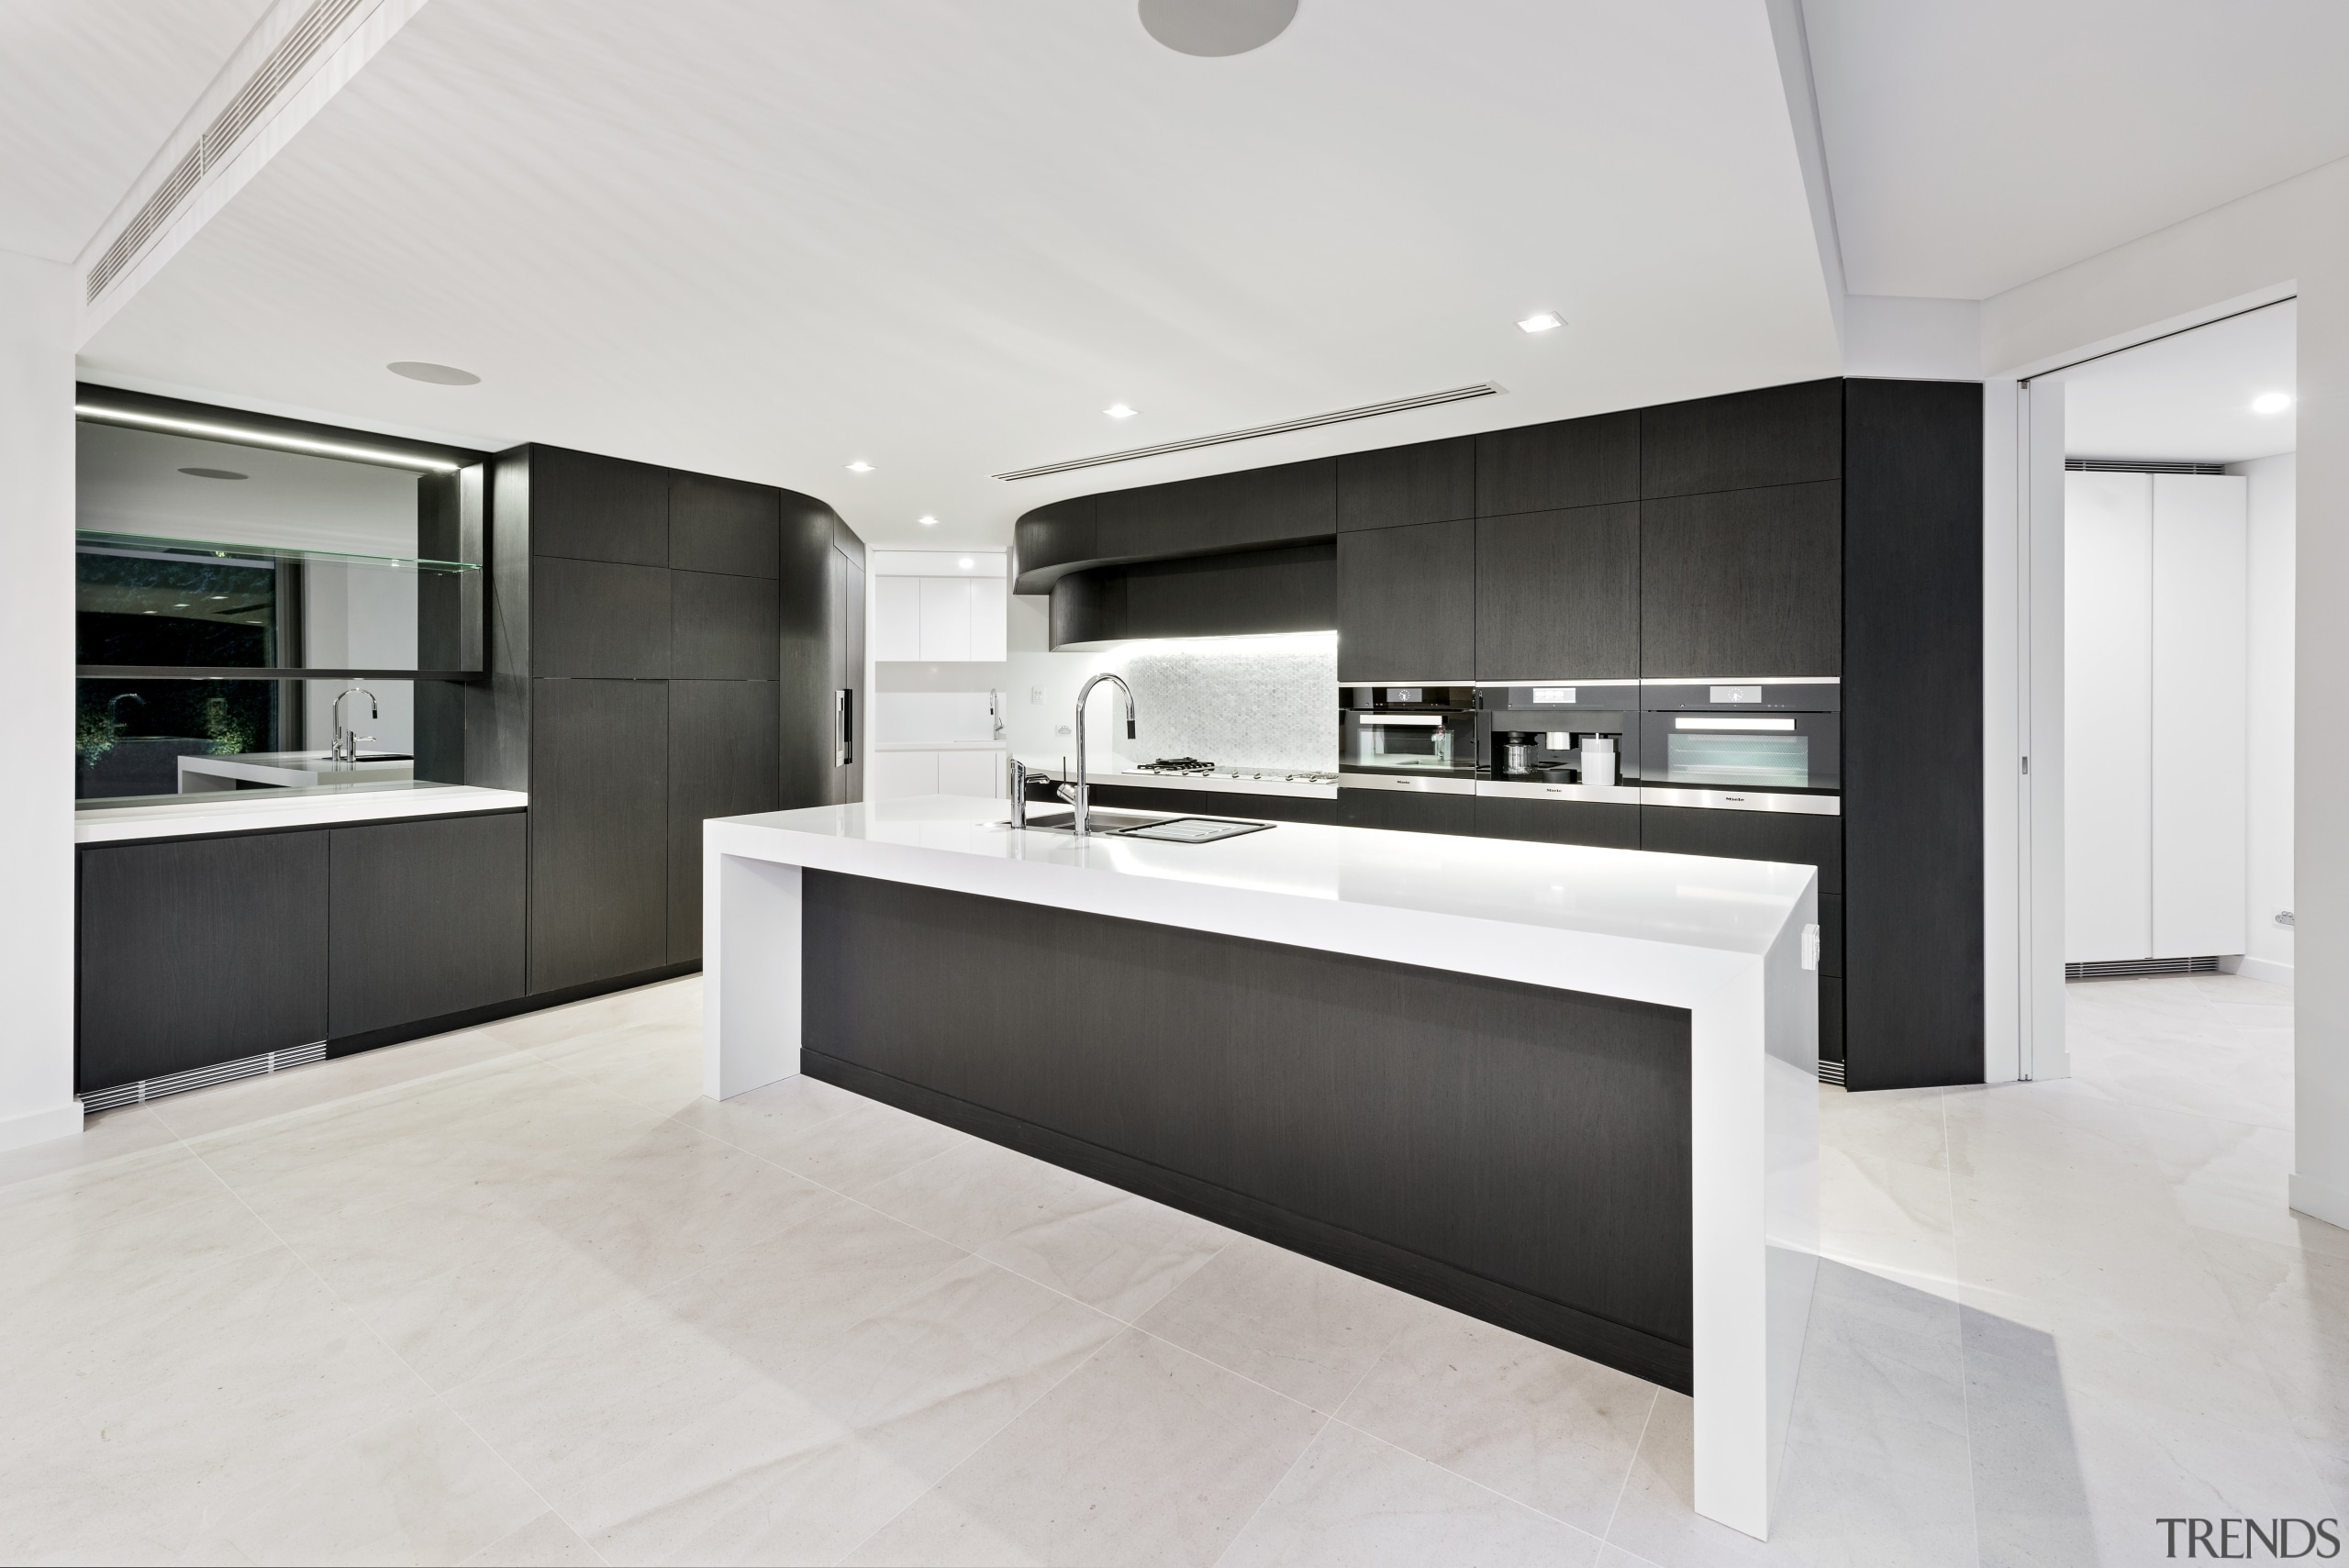 While this kitchen is in black and white, countertop, interior design, kitchen, real estate, white